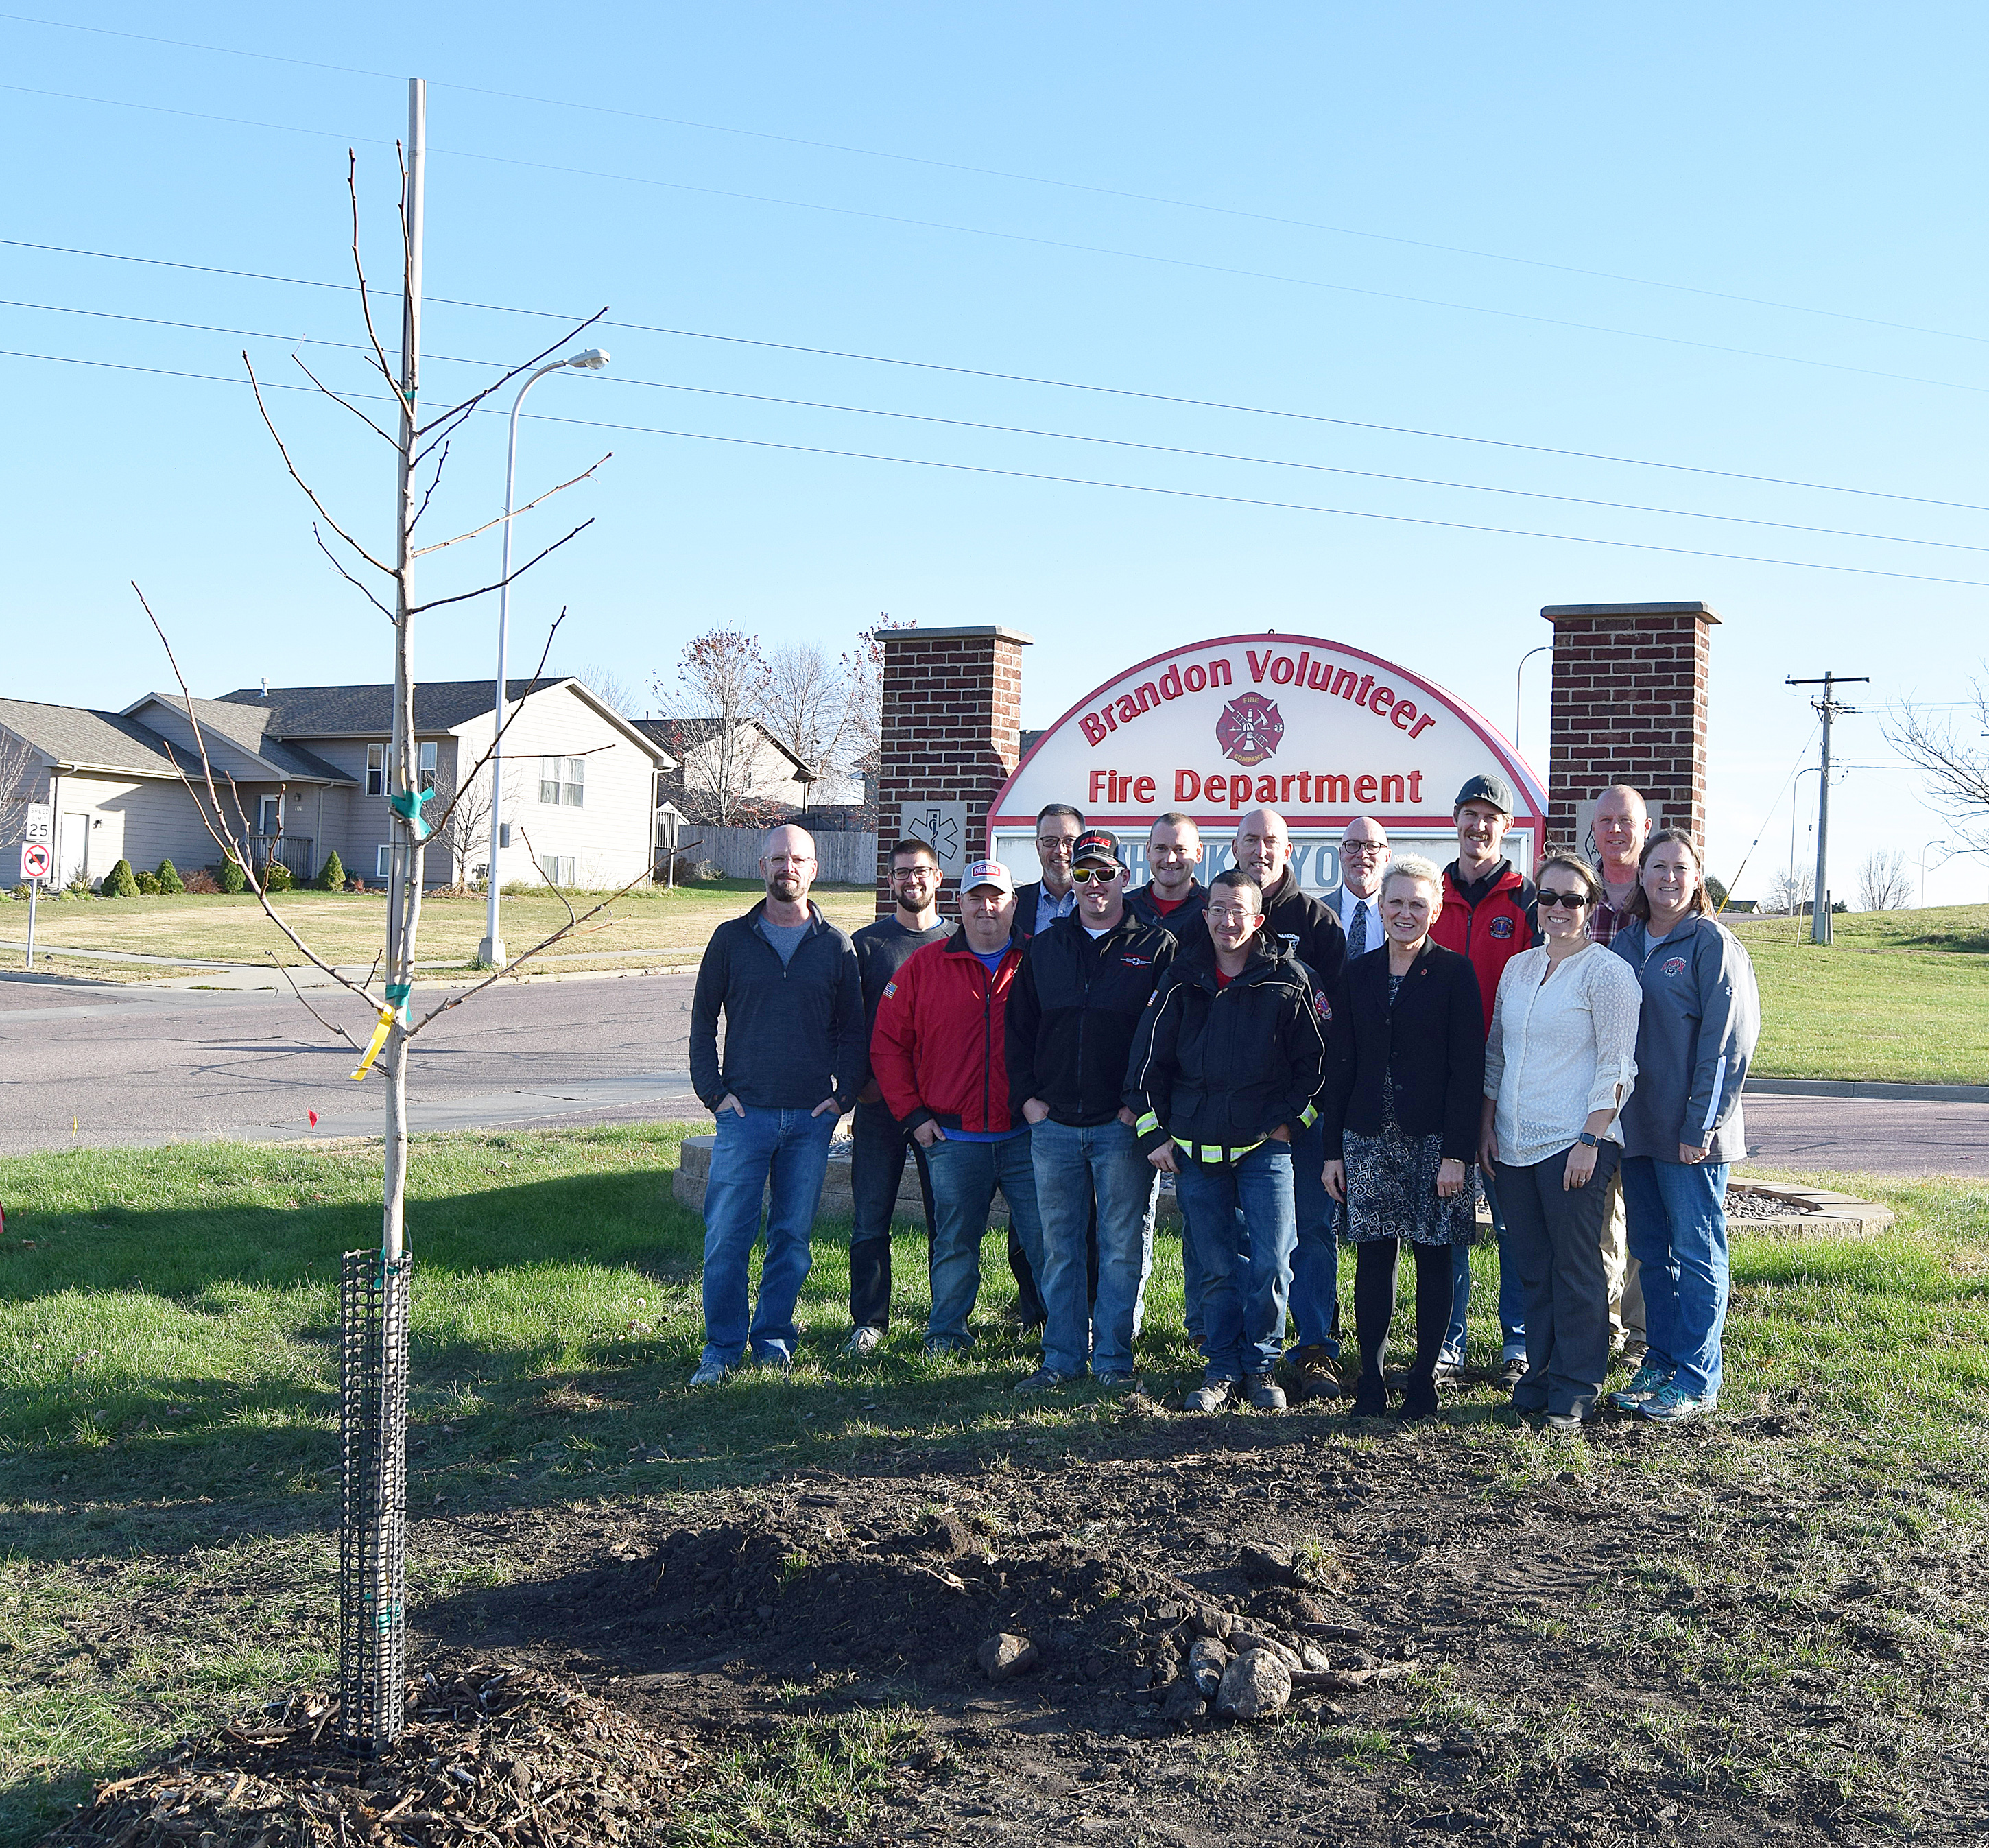 Brandon city officials, volunteer firefighters and city park board members planted three Ginko trees to replace three Ash trees along the boulevard of the fire station last week. The tree planting is Brandon's salute Arbor Day, which is typically recognized in April. Devin Coughlin, director of parks, said the trees will grow 50 to 60 feet fall and are disease and bug resistant. Brandon was designated a Tree City U.S.A. in 2008. <strong>Jill Meier/BV Journal</strong>*/